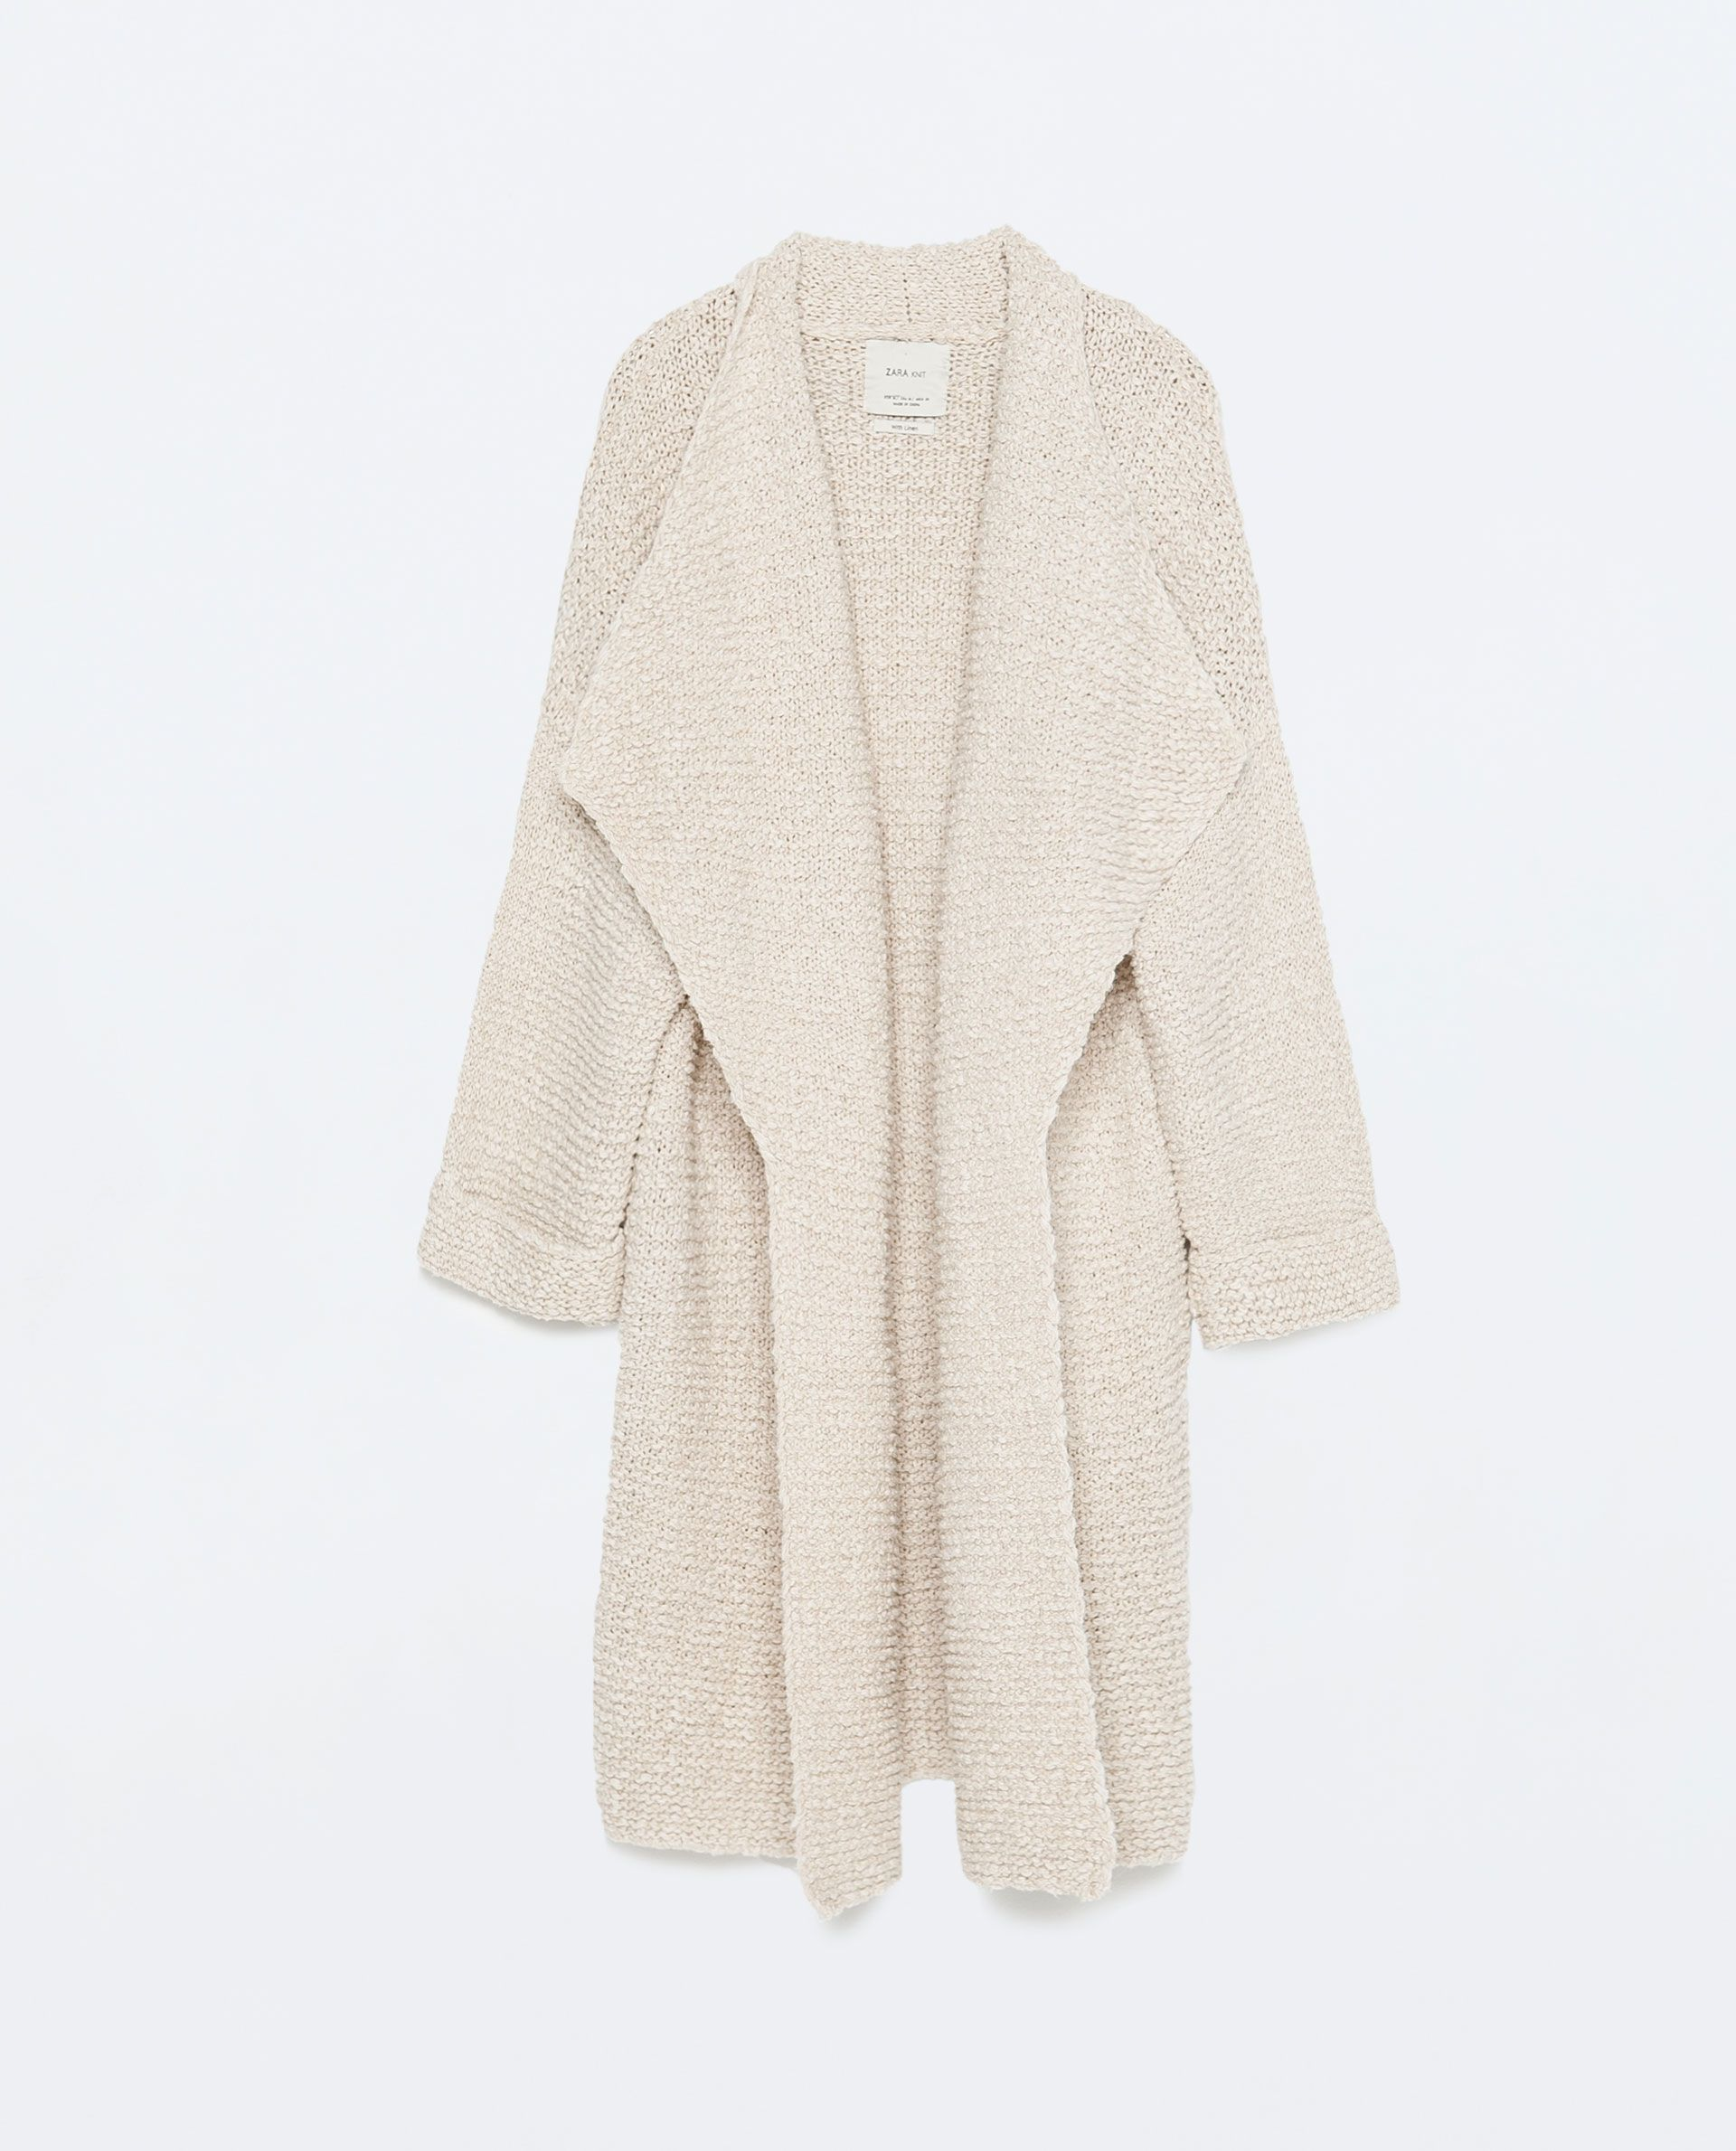 ZARA - WOMAN - LONG KNITTED CARDIGAN | spring lookbook | Pinterest ...